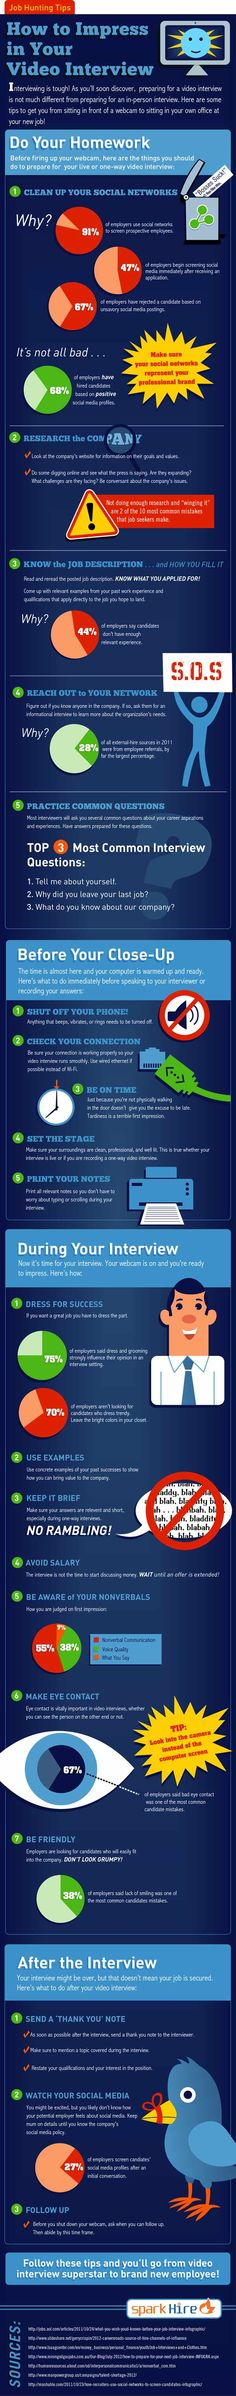 infographic: How To Impress In Your Video Interview